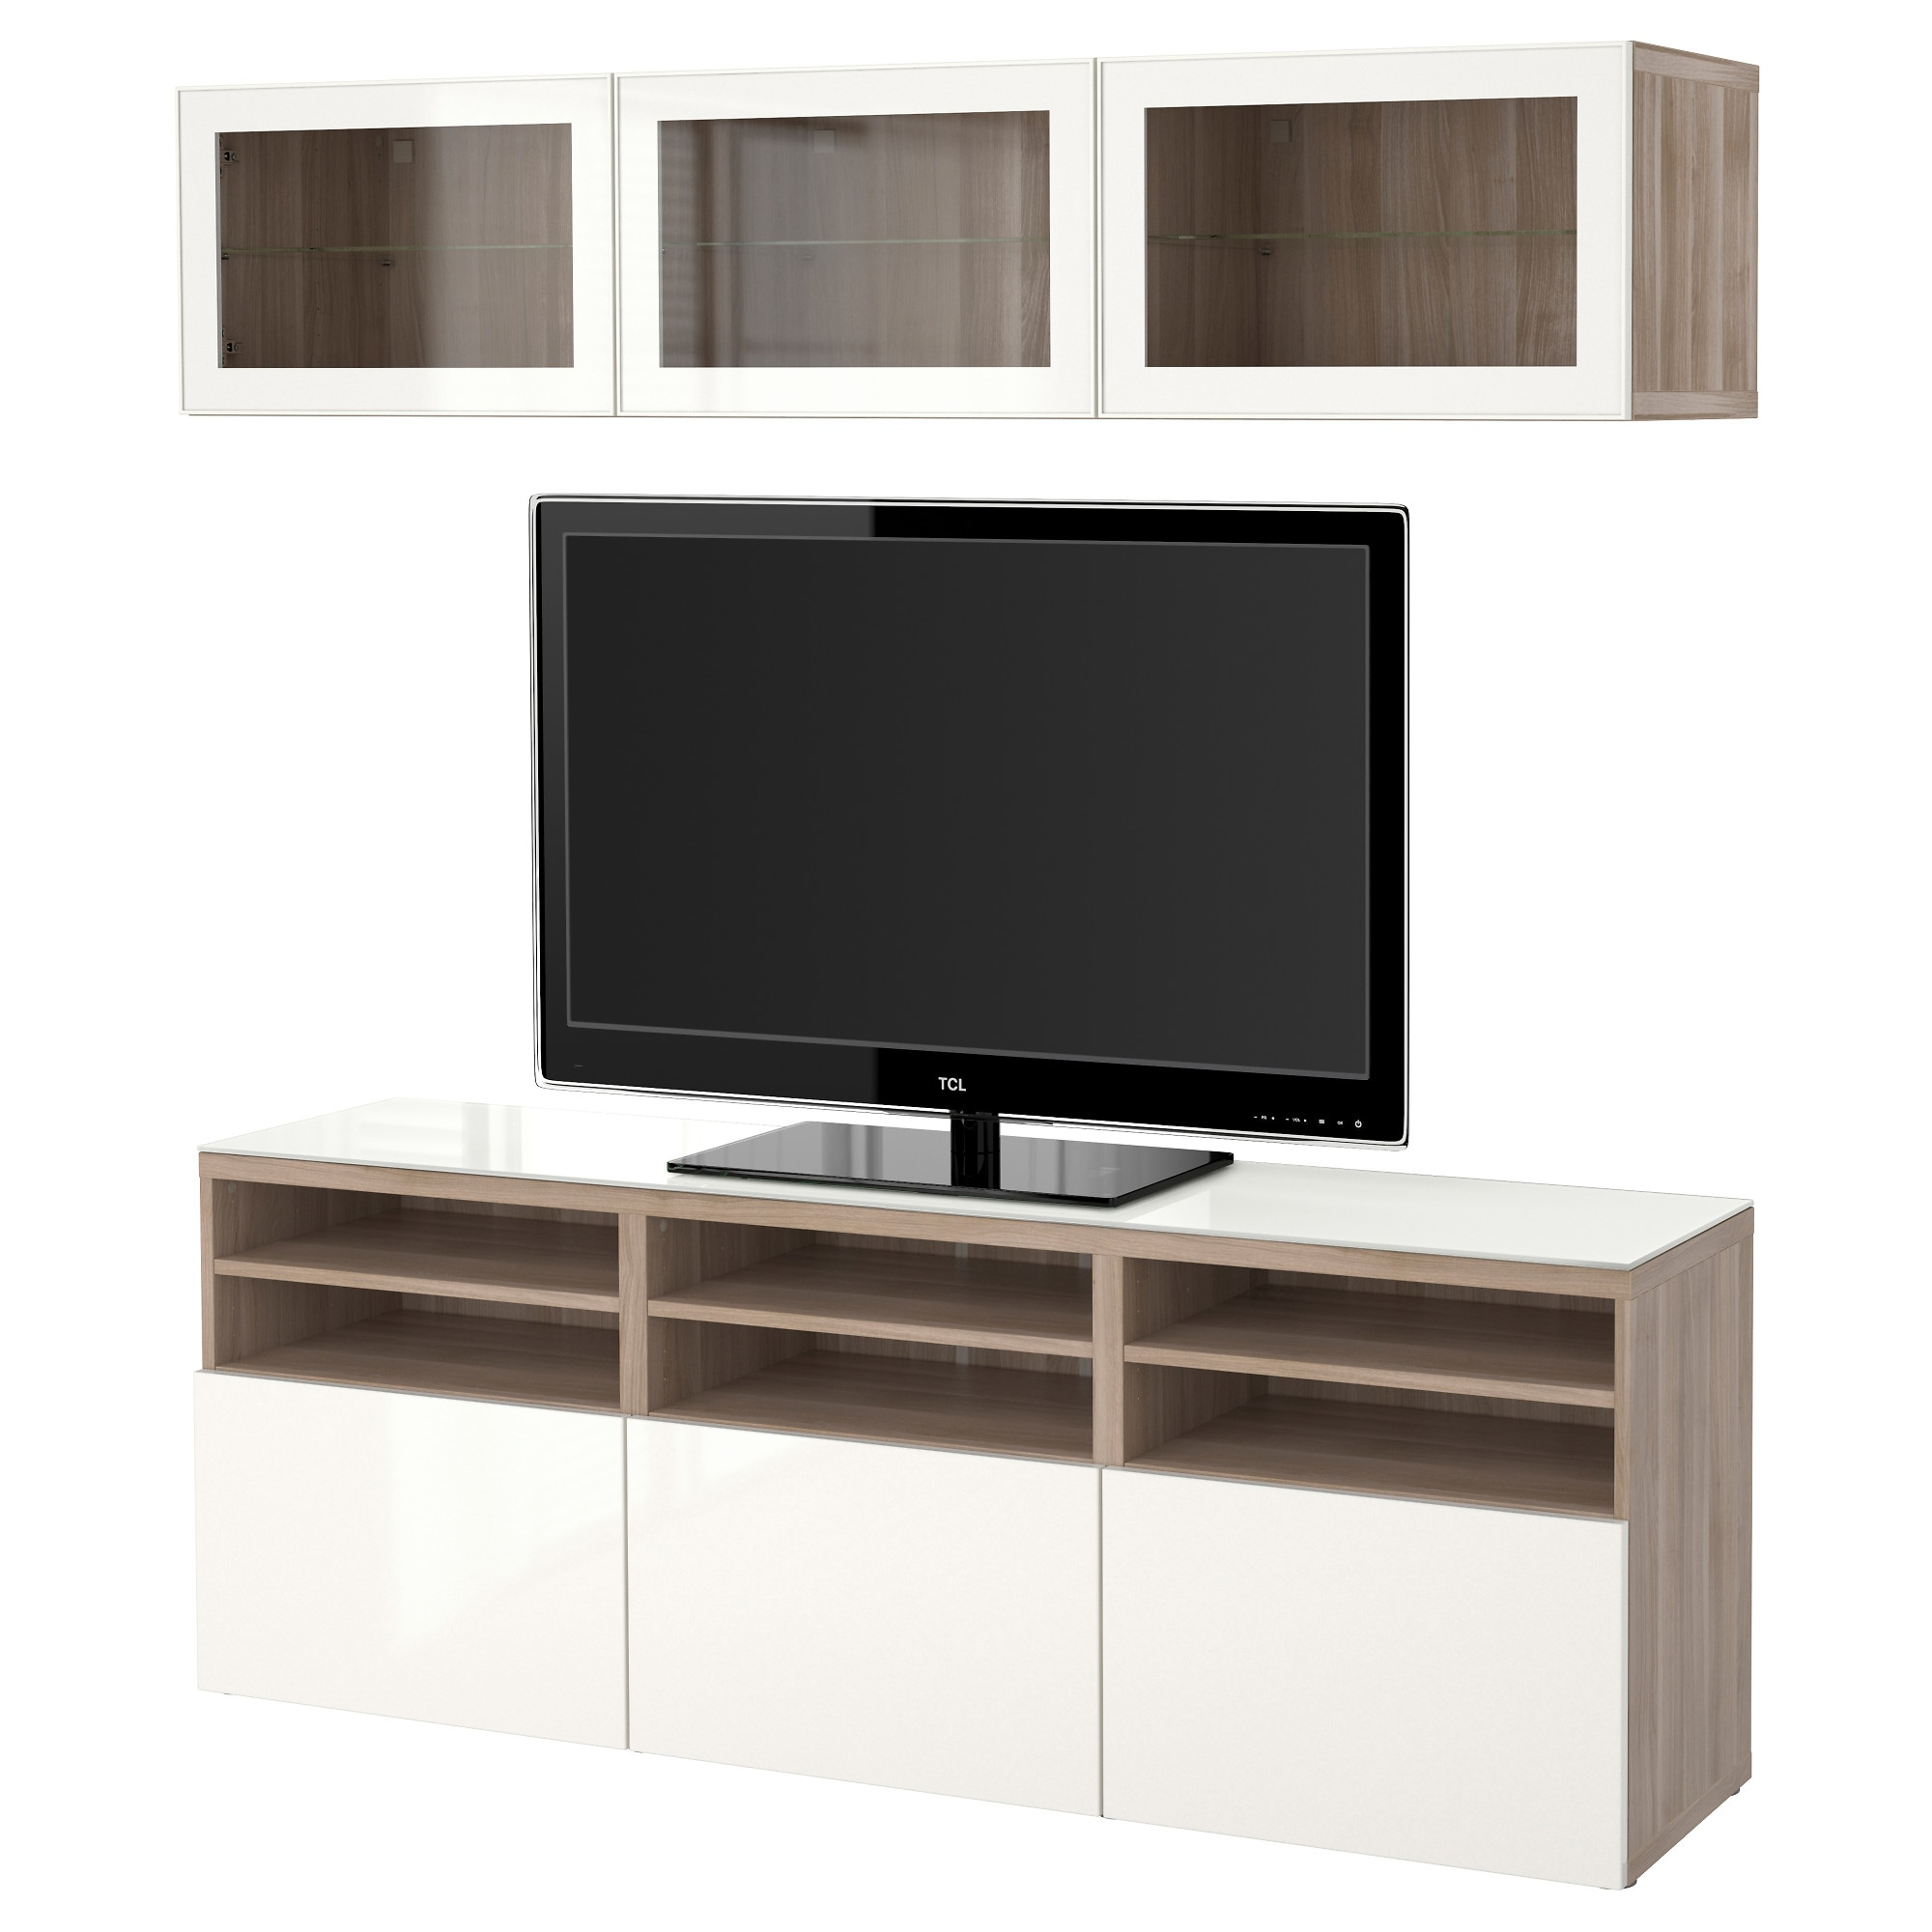 Best Tv Storage Combination Glass Doors Walnut Effect Light  # Table De Tele En Verre